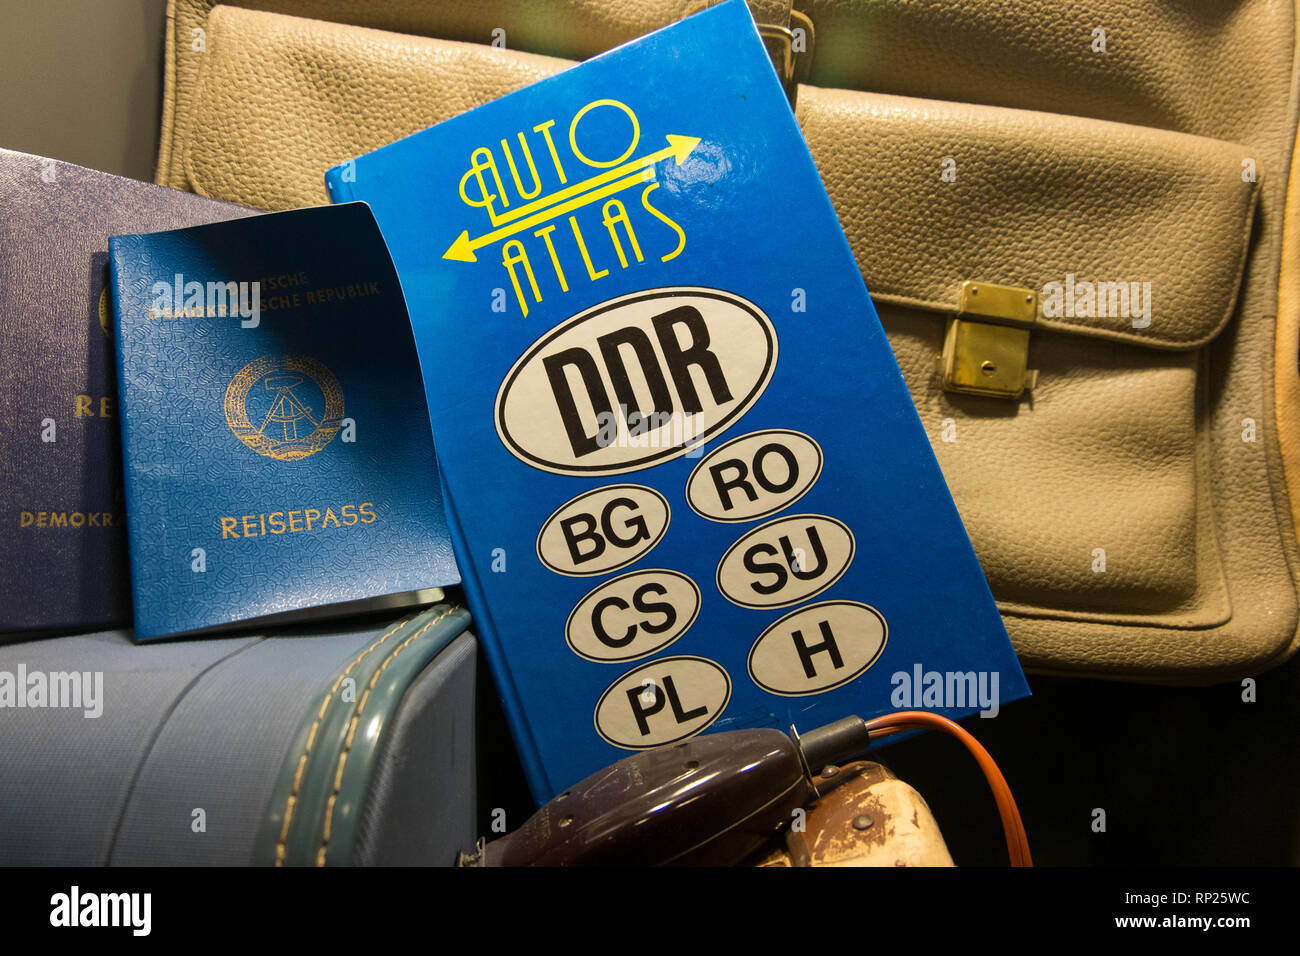 The DDR museum in Berlin, Germany. A travel guide, atlas for East Germany. - Stock Image